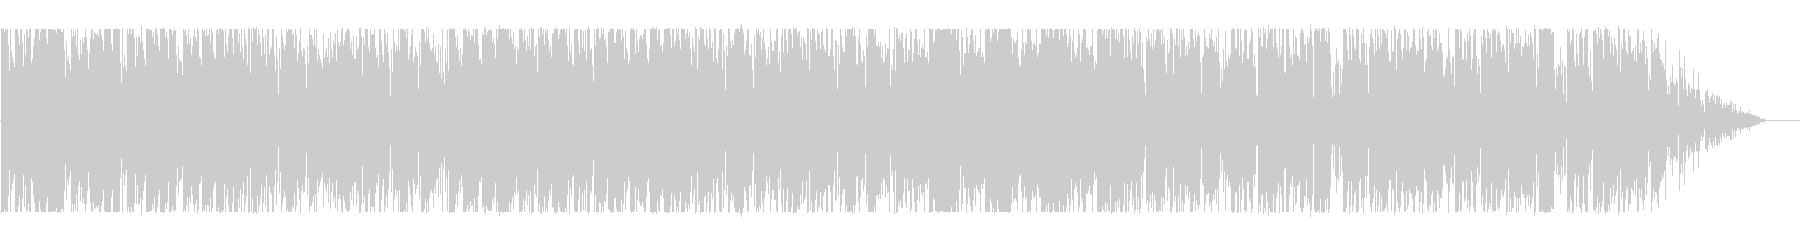 Lazy daily BGM's unreproduced waveform